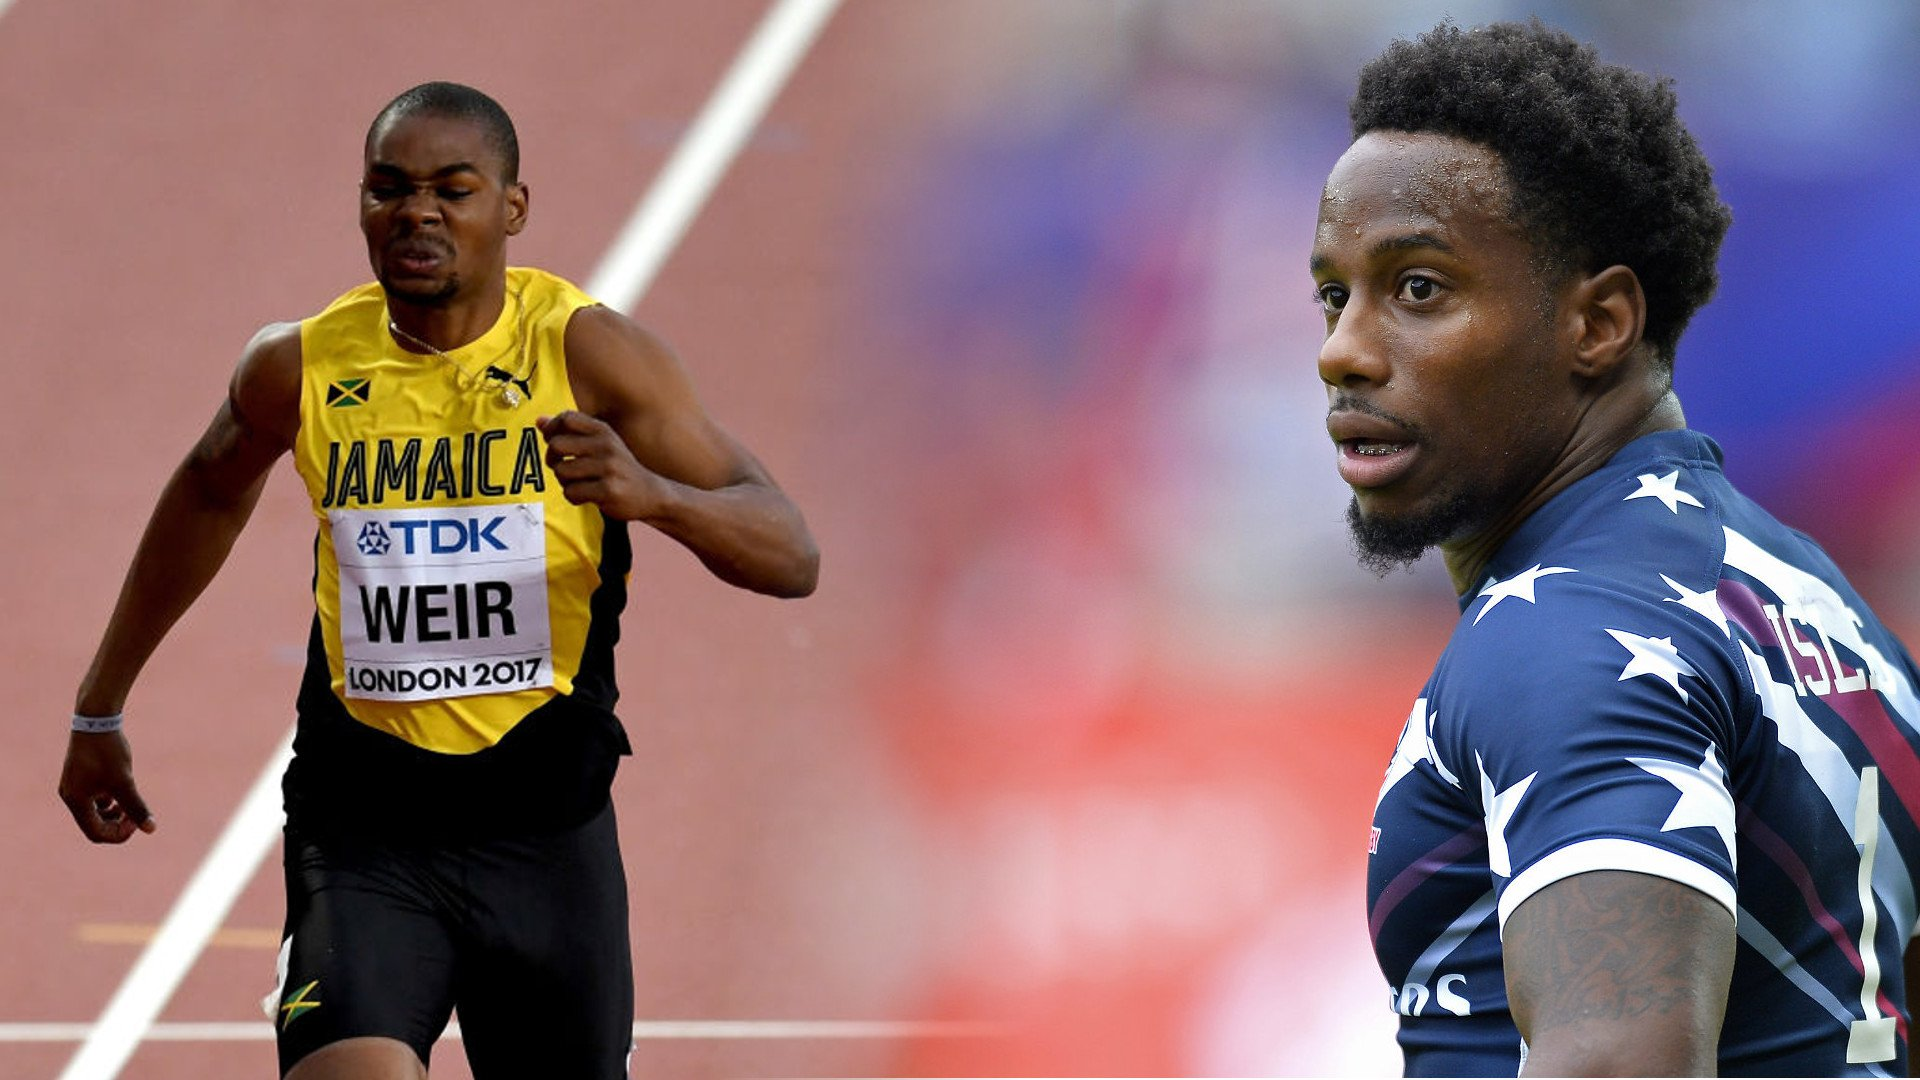 Carlin Isles to lose rugby's fastest title as 10.02 second Olympic sprinter enters sport